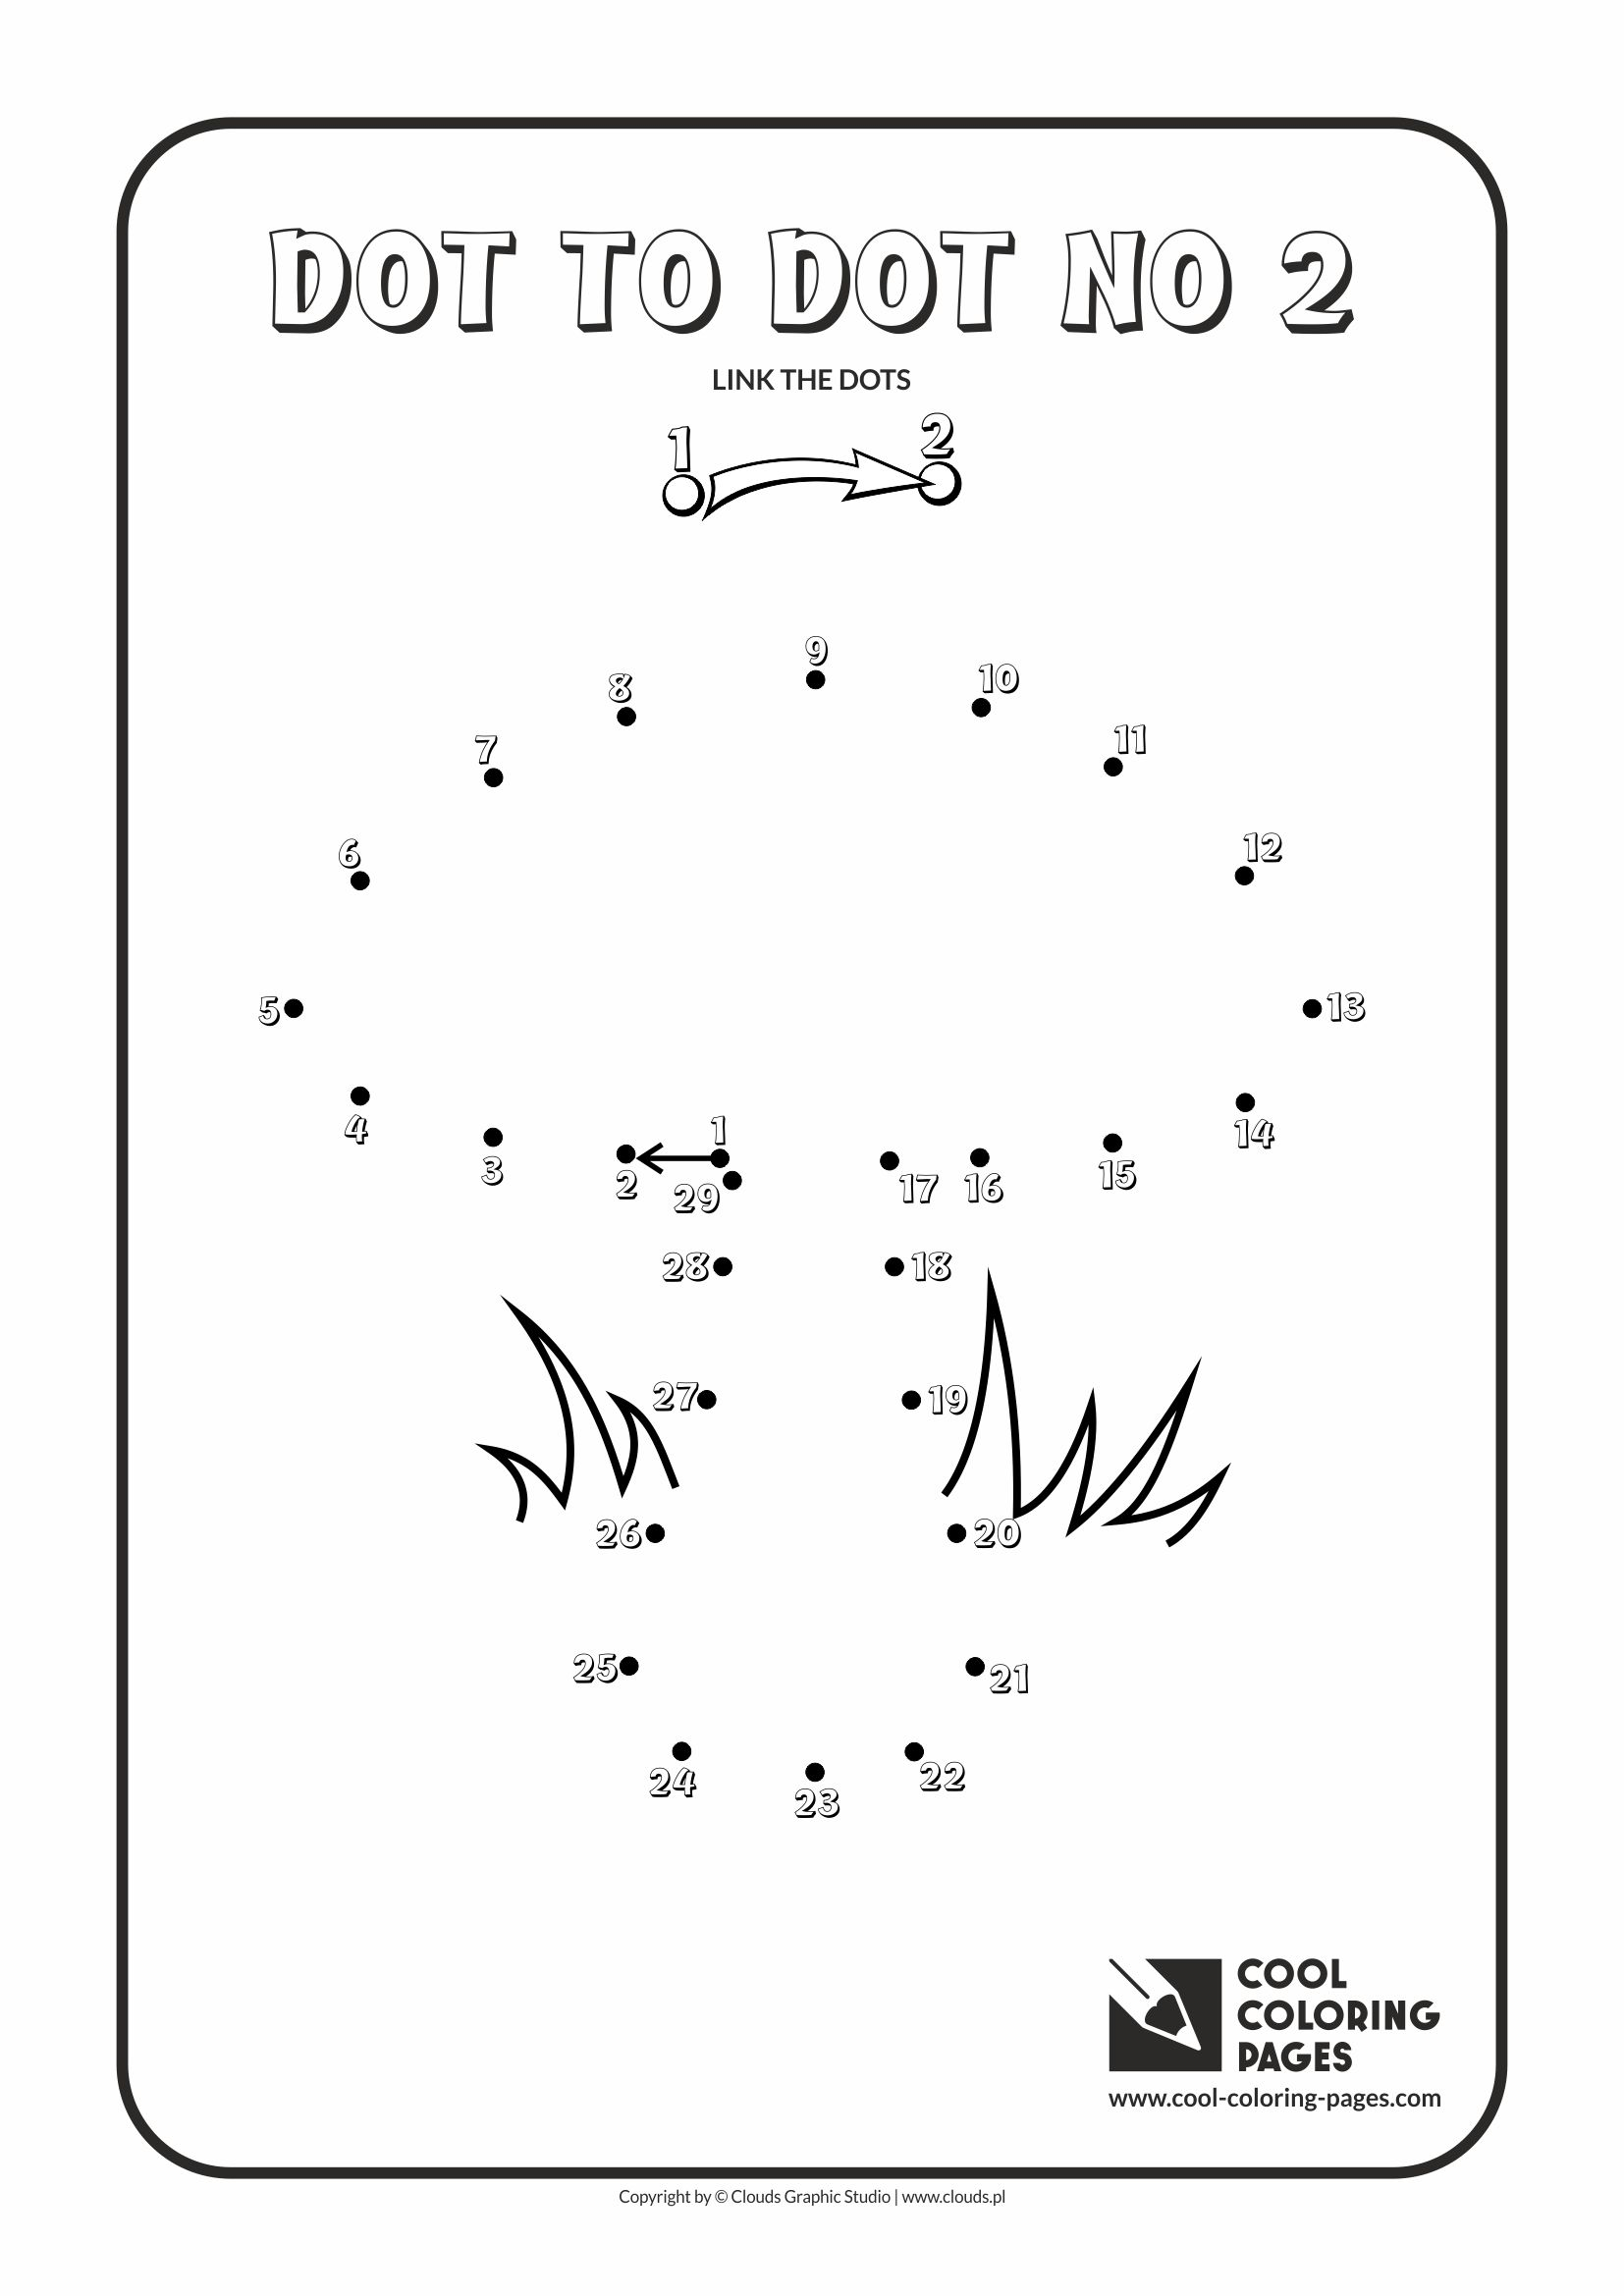 Cool Coloring Pages - Dot to dot / Dot to dot no 2